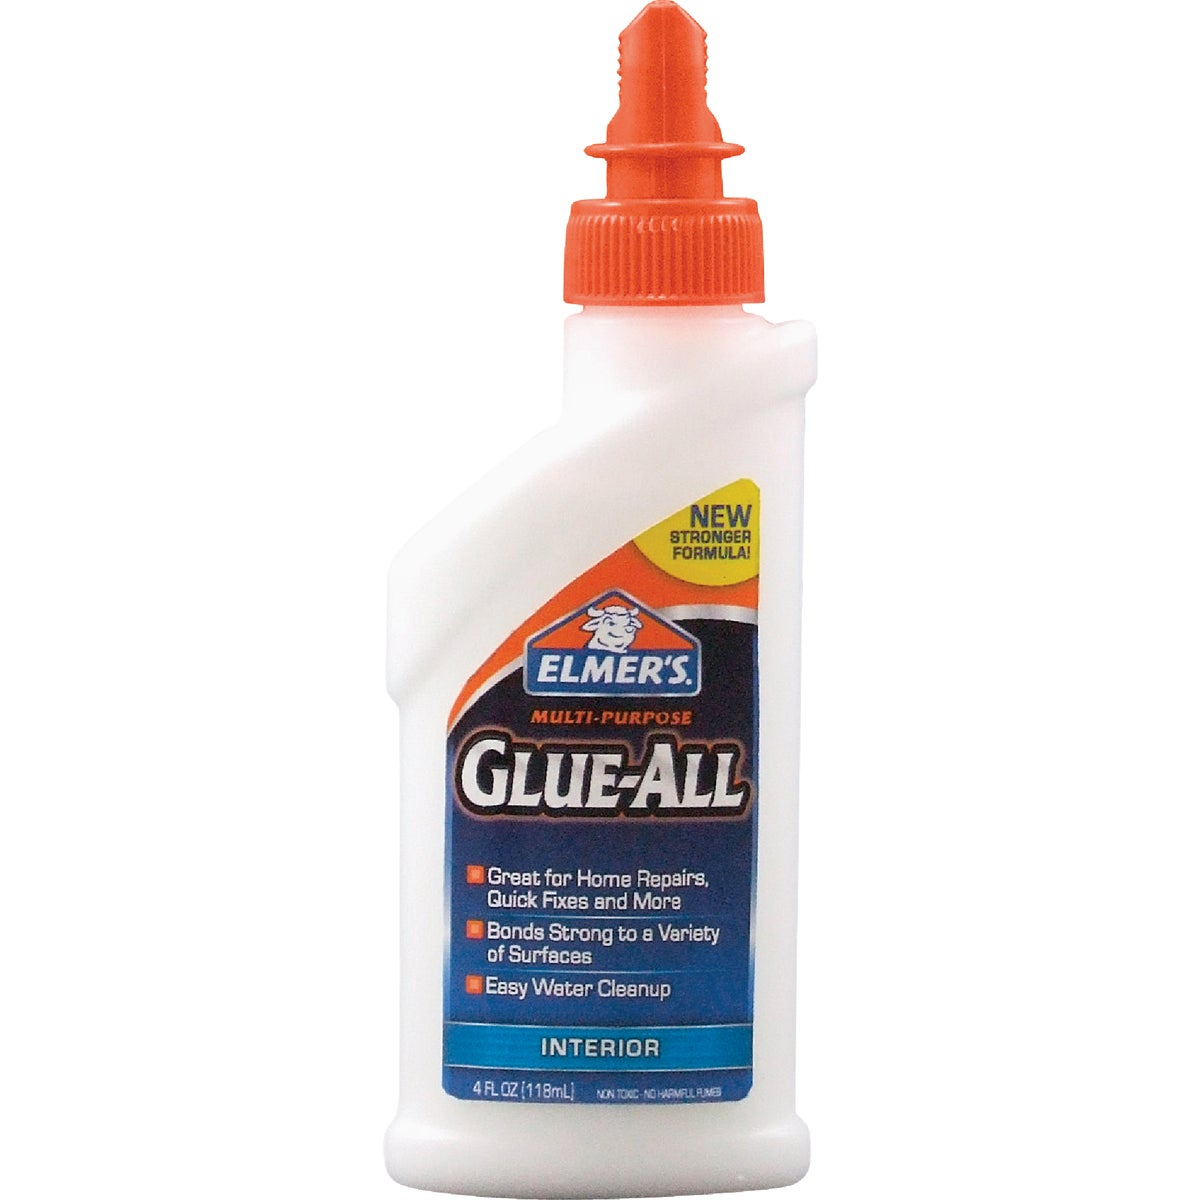 4OZ GLUE-ALL - E3810 by Elmers Products Inc